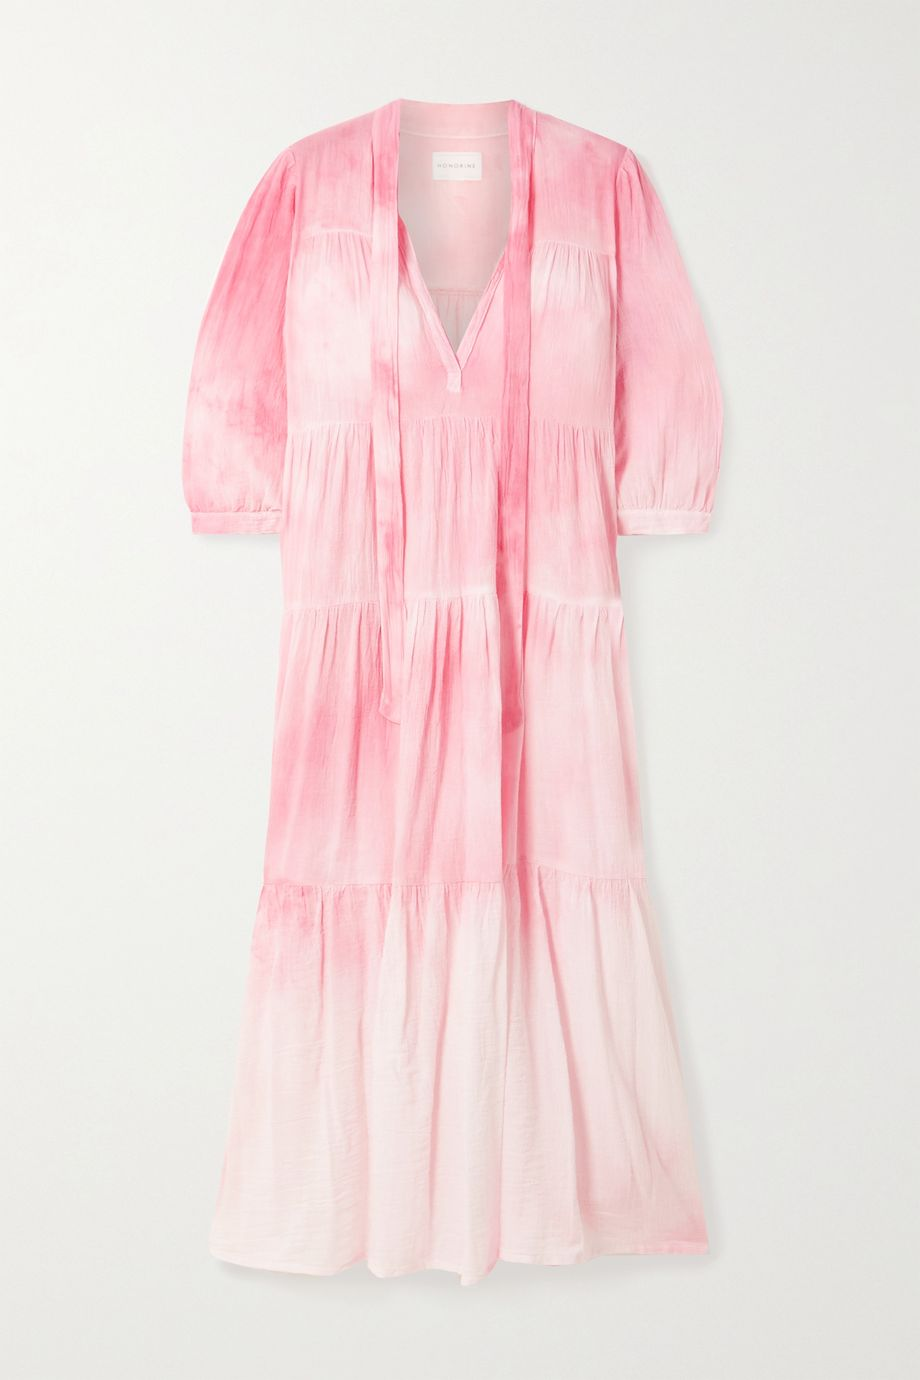 Honorine Giselle tiered crinkled tie-dyed cotton-gauze midi dress